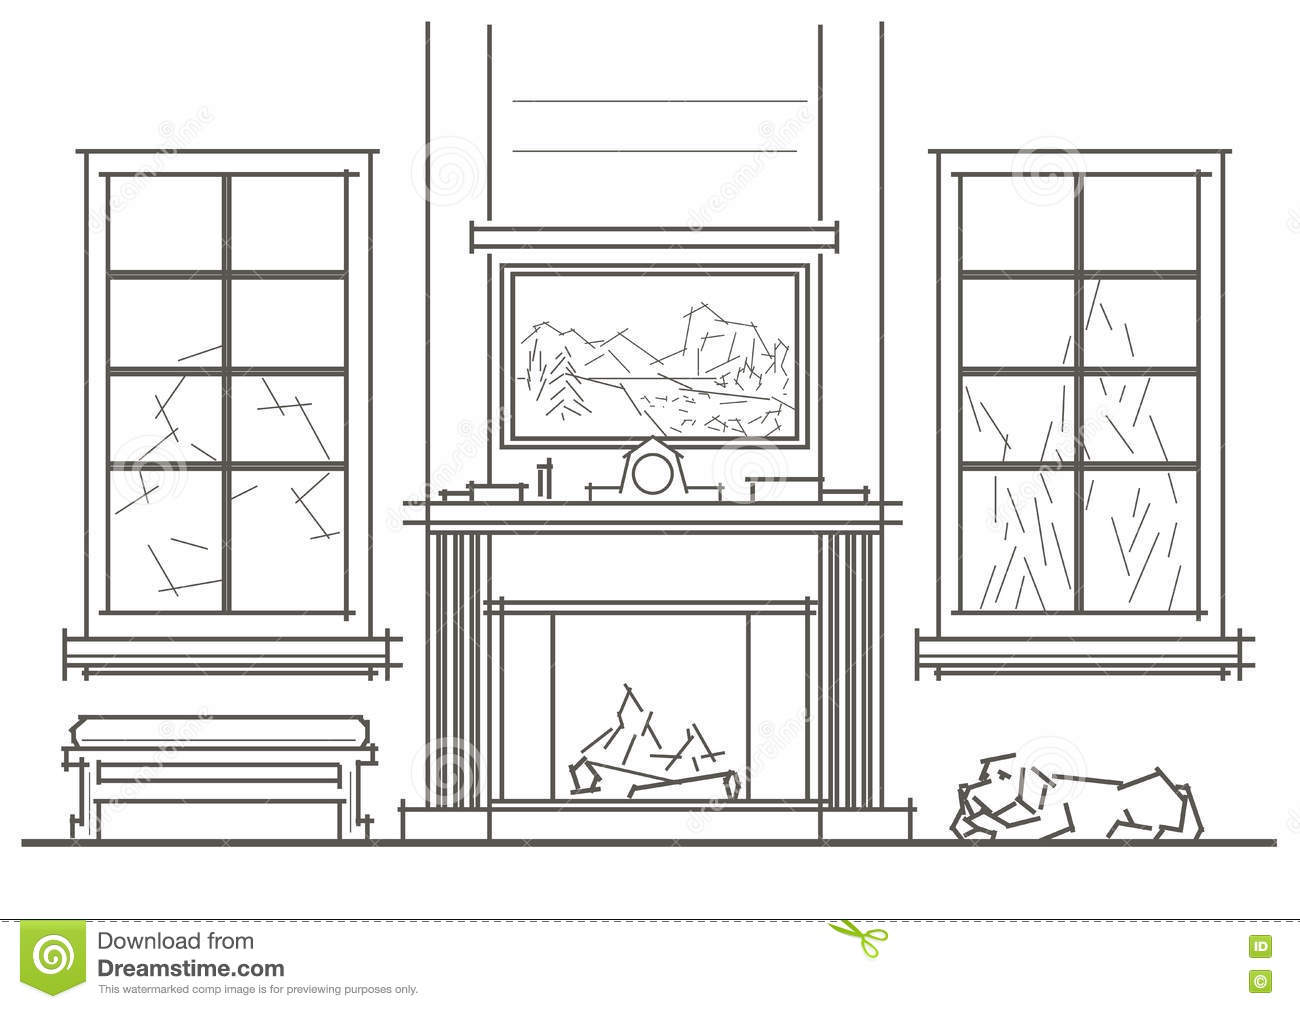 Architectural sketch living room interior with chimney front view stock vector